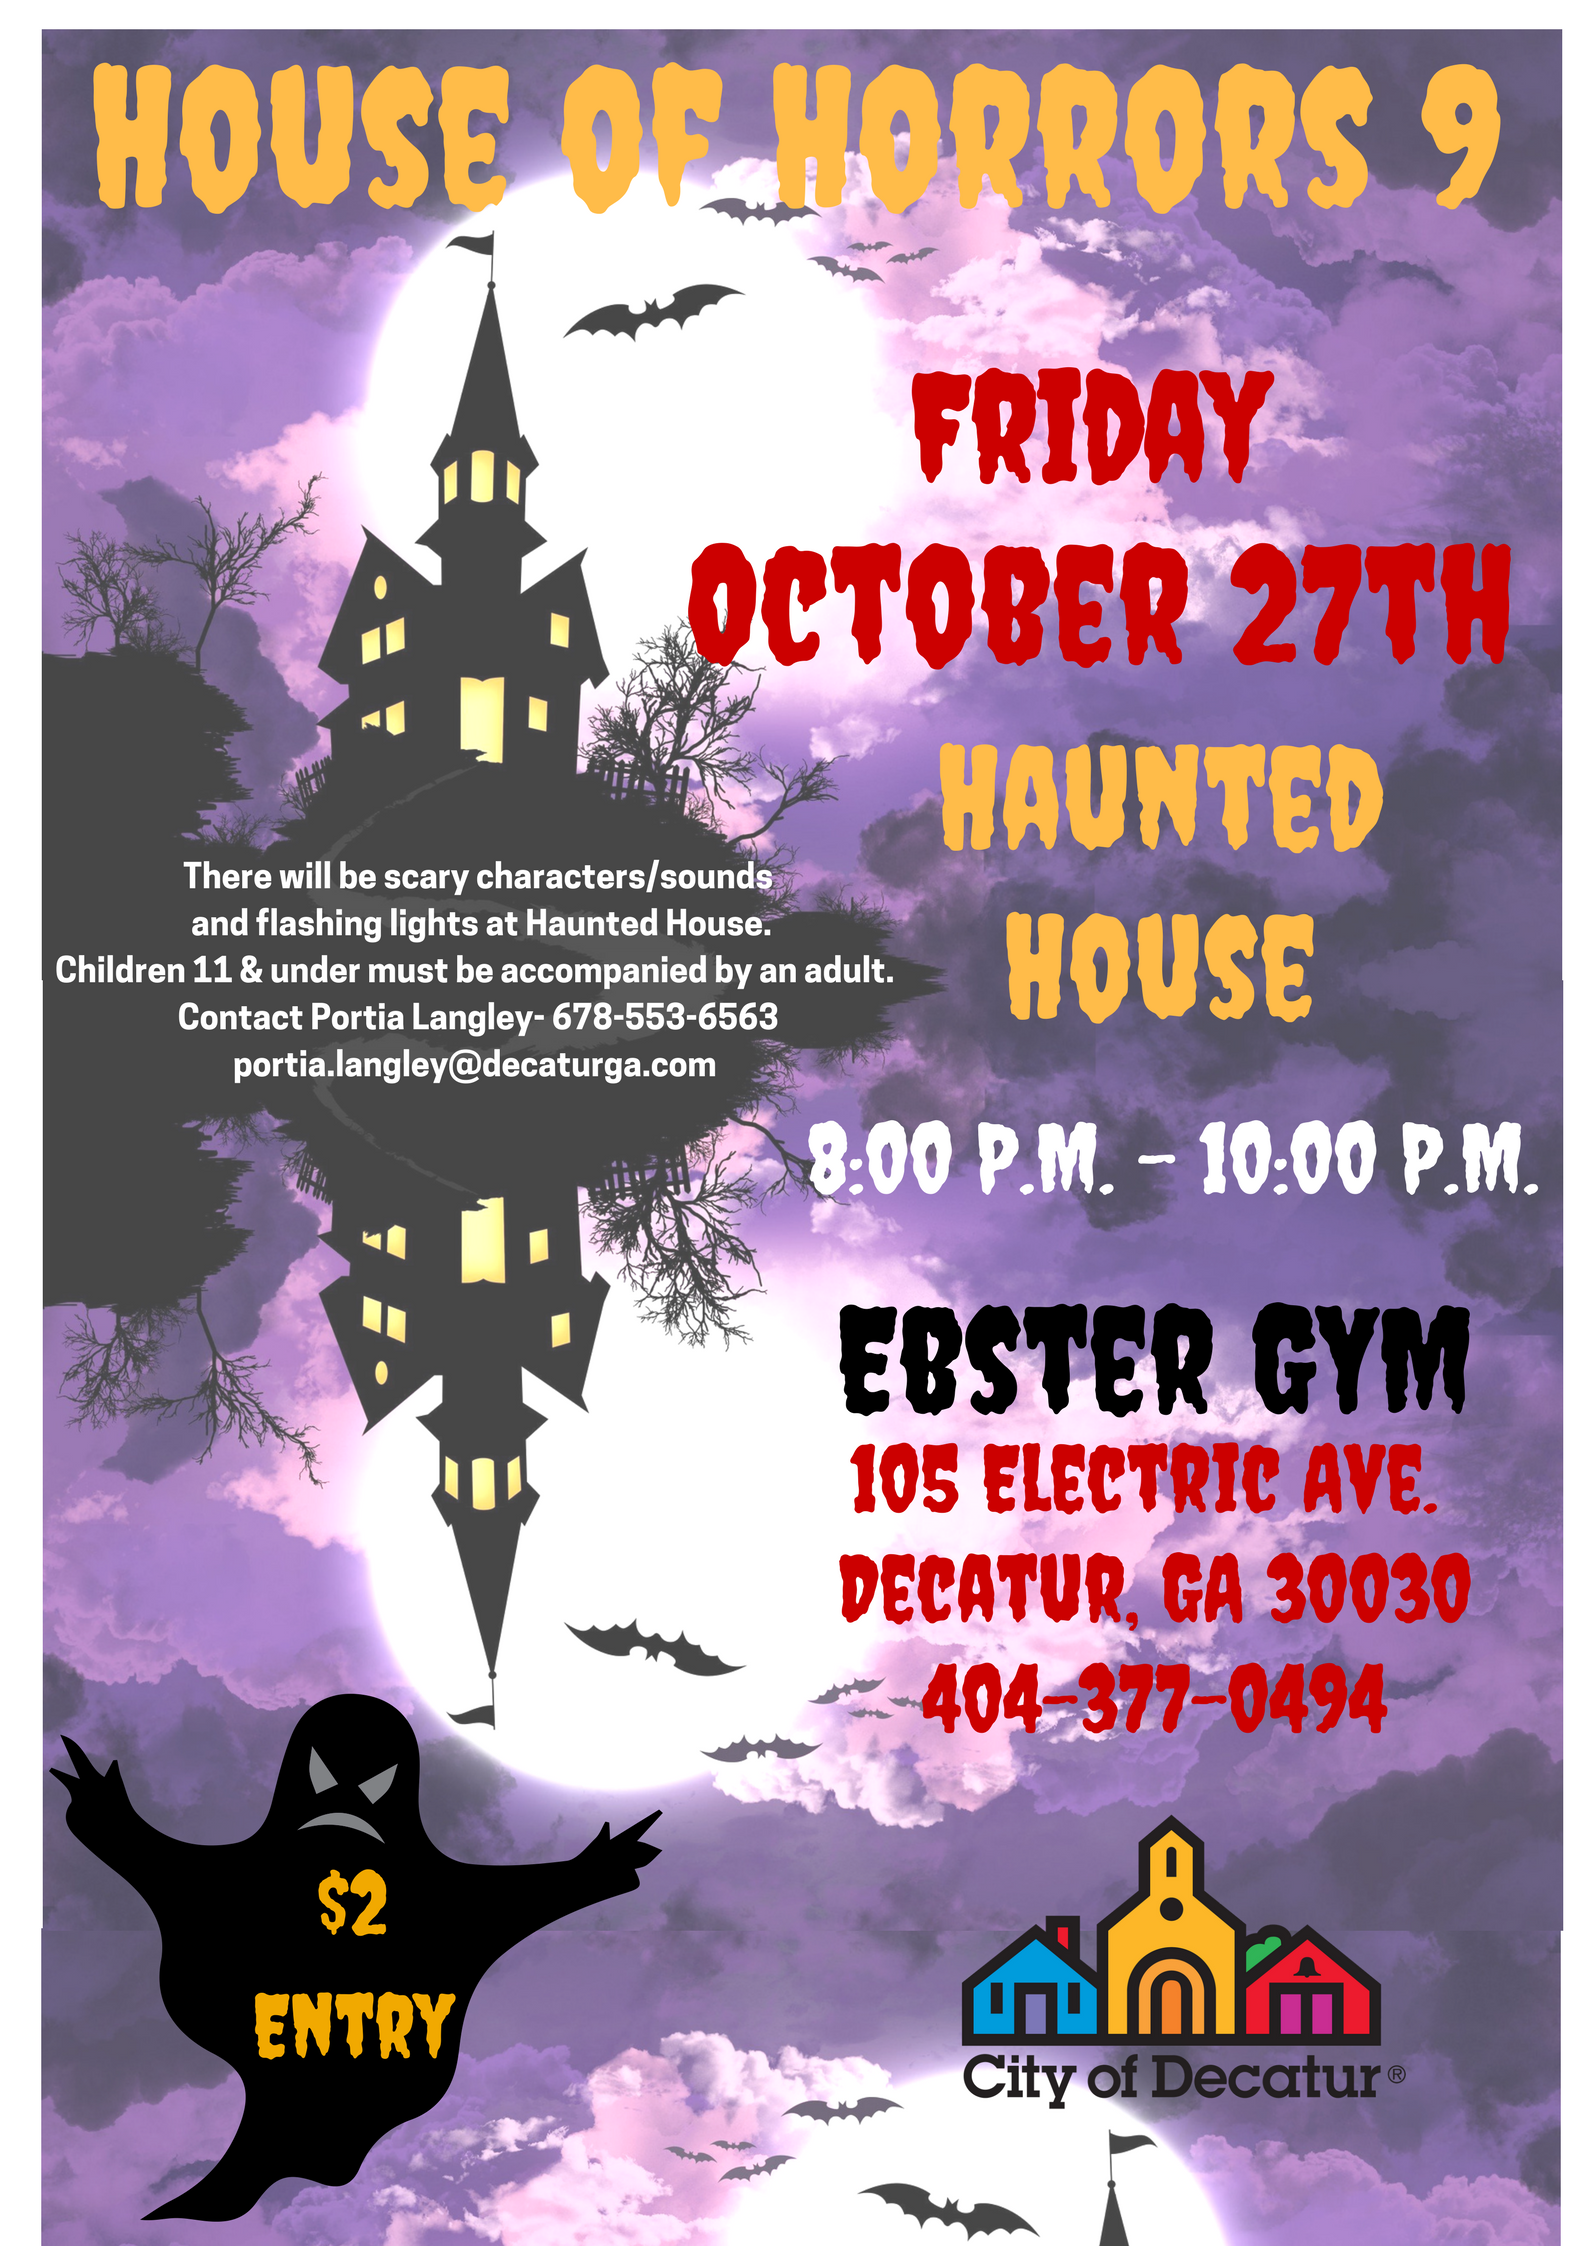 Haunted House 2017 Flyer